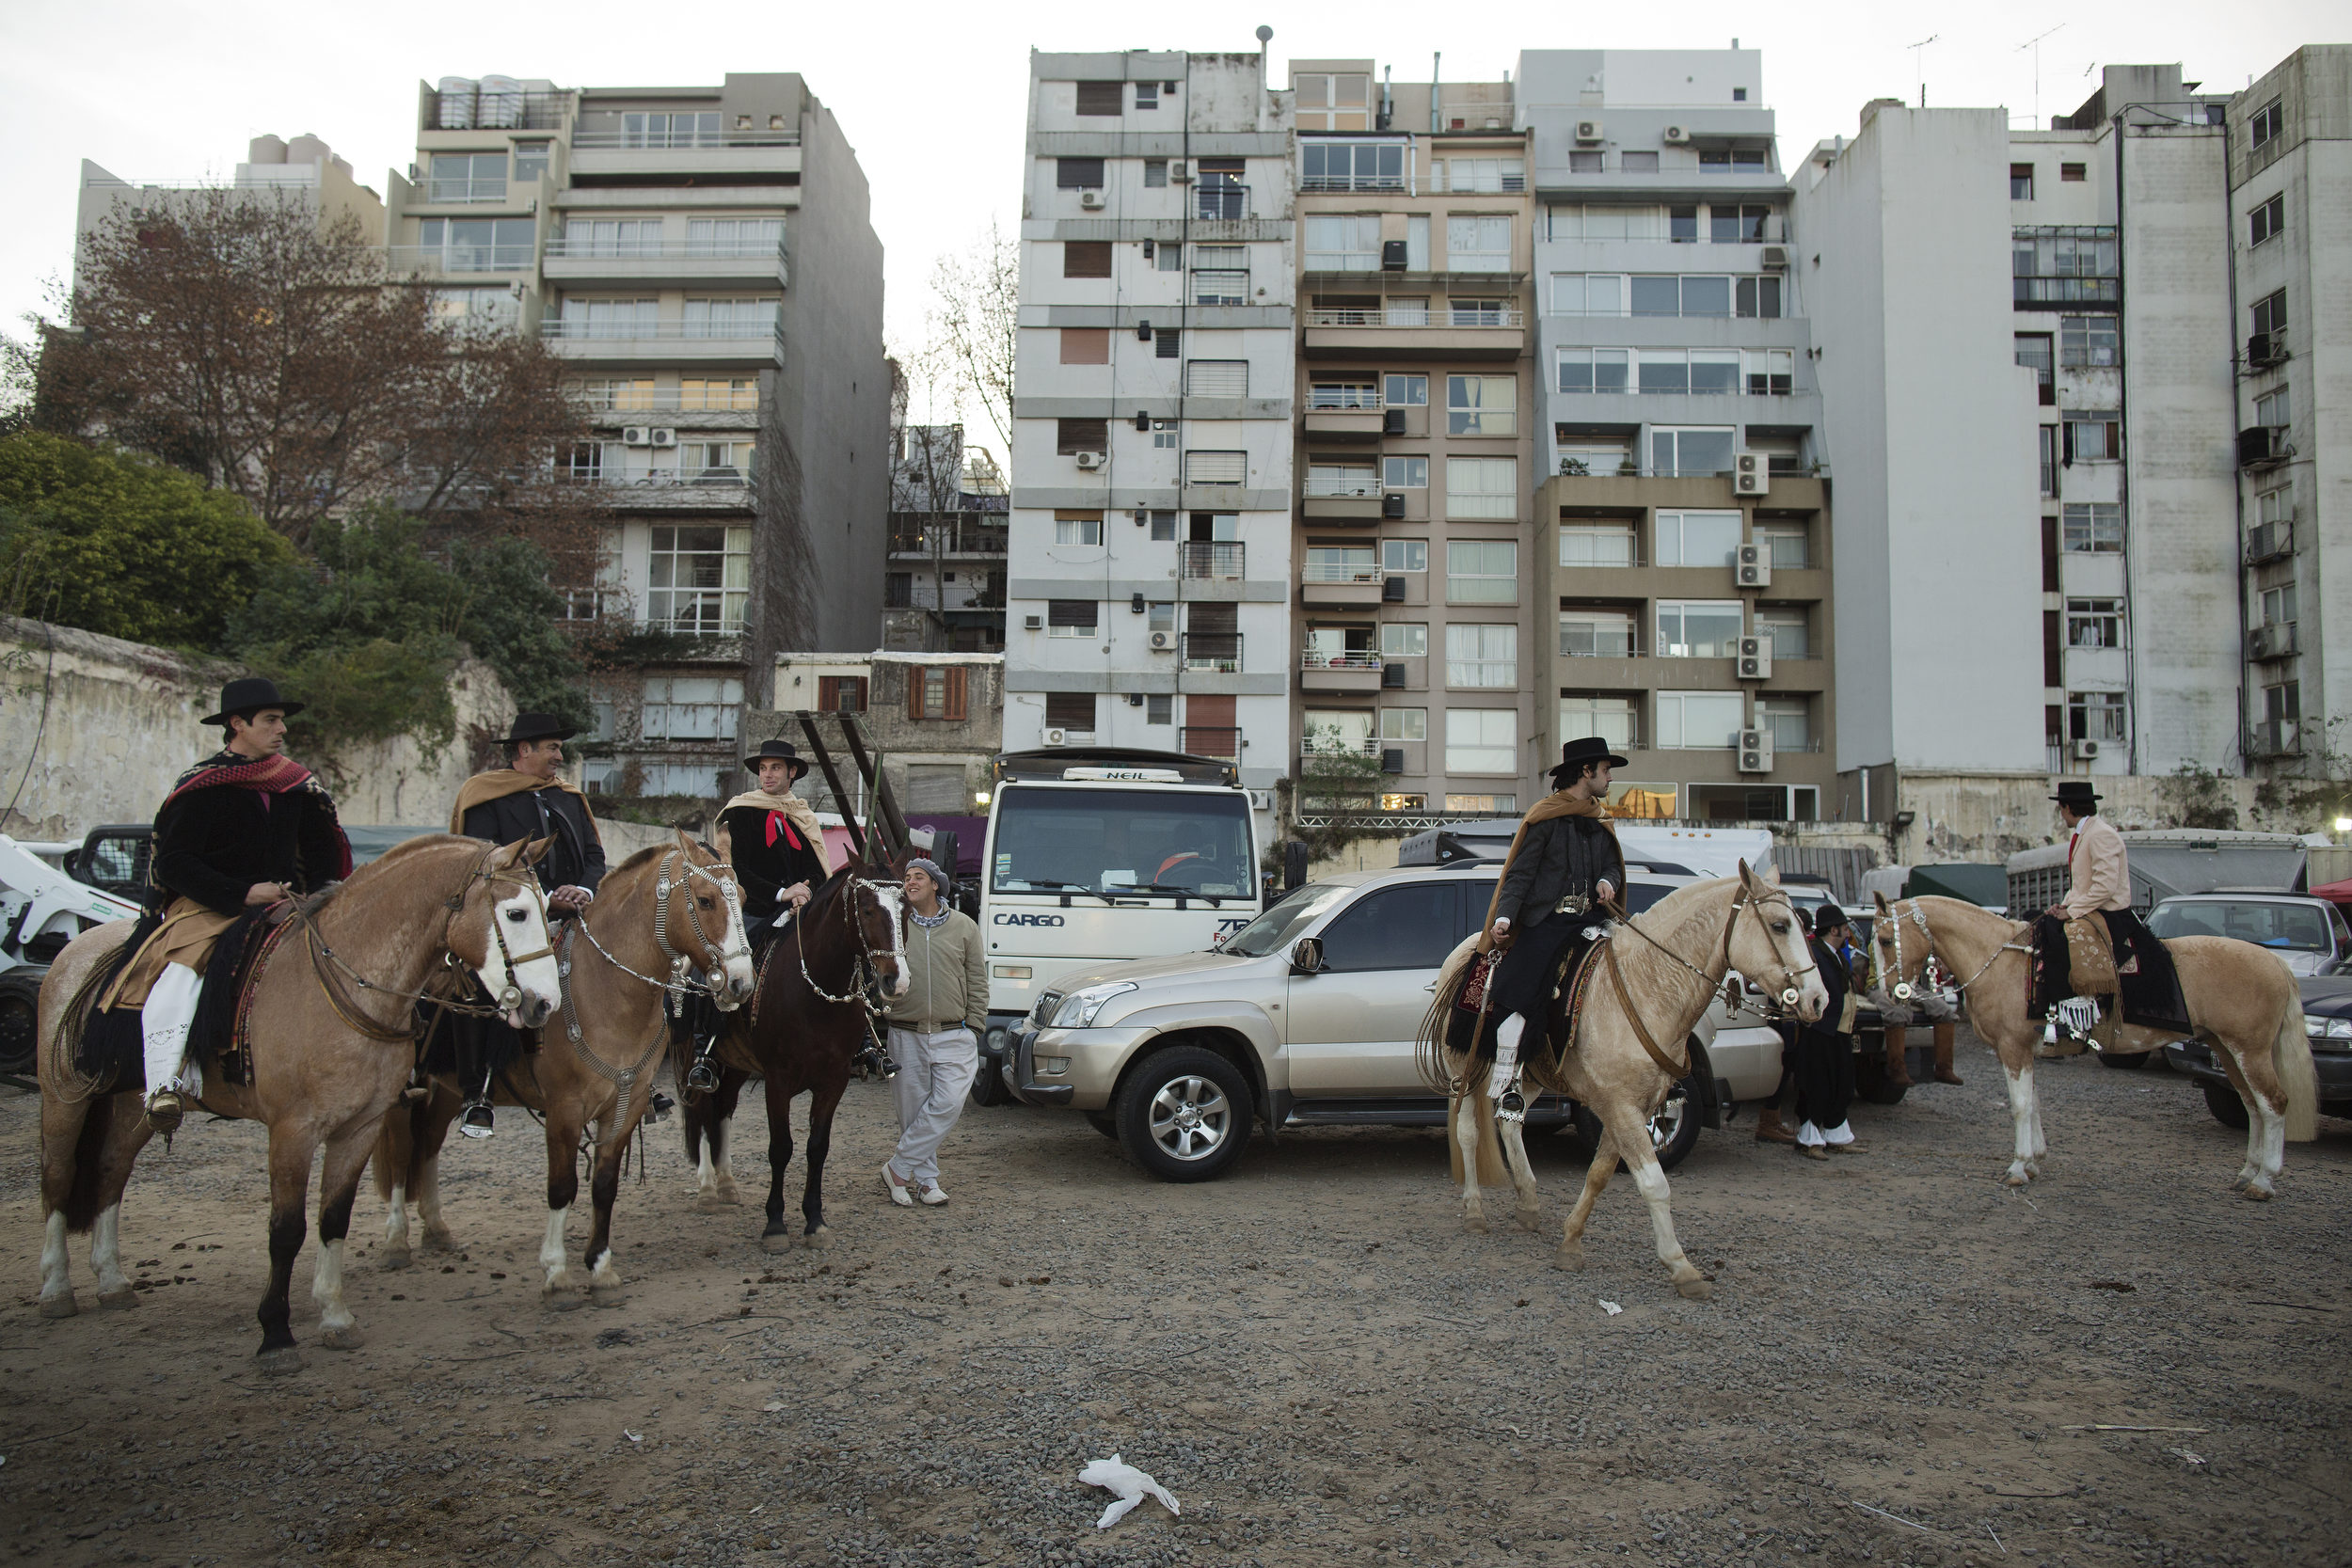 Pablo and a team of riders prepare to enter the ring in a suburb behind the Rural.